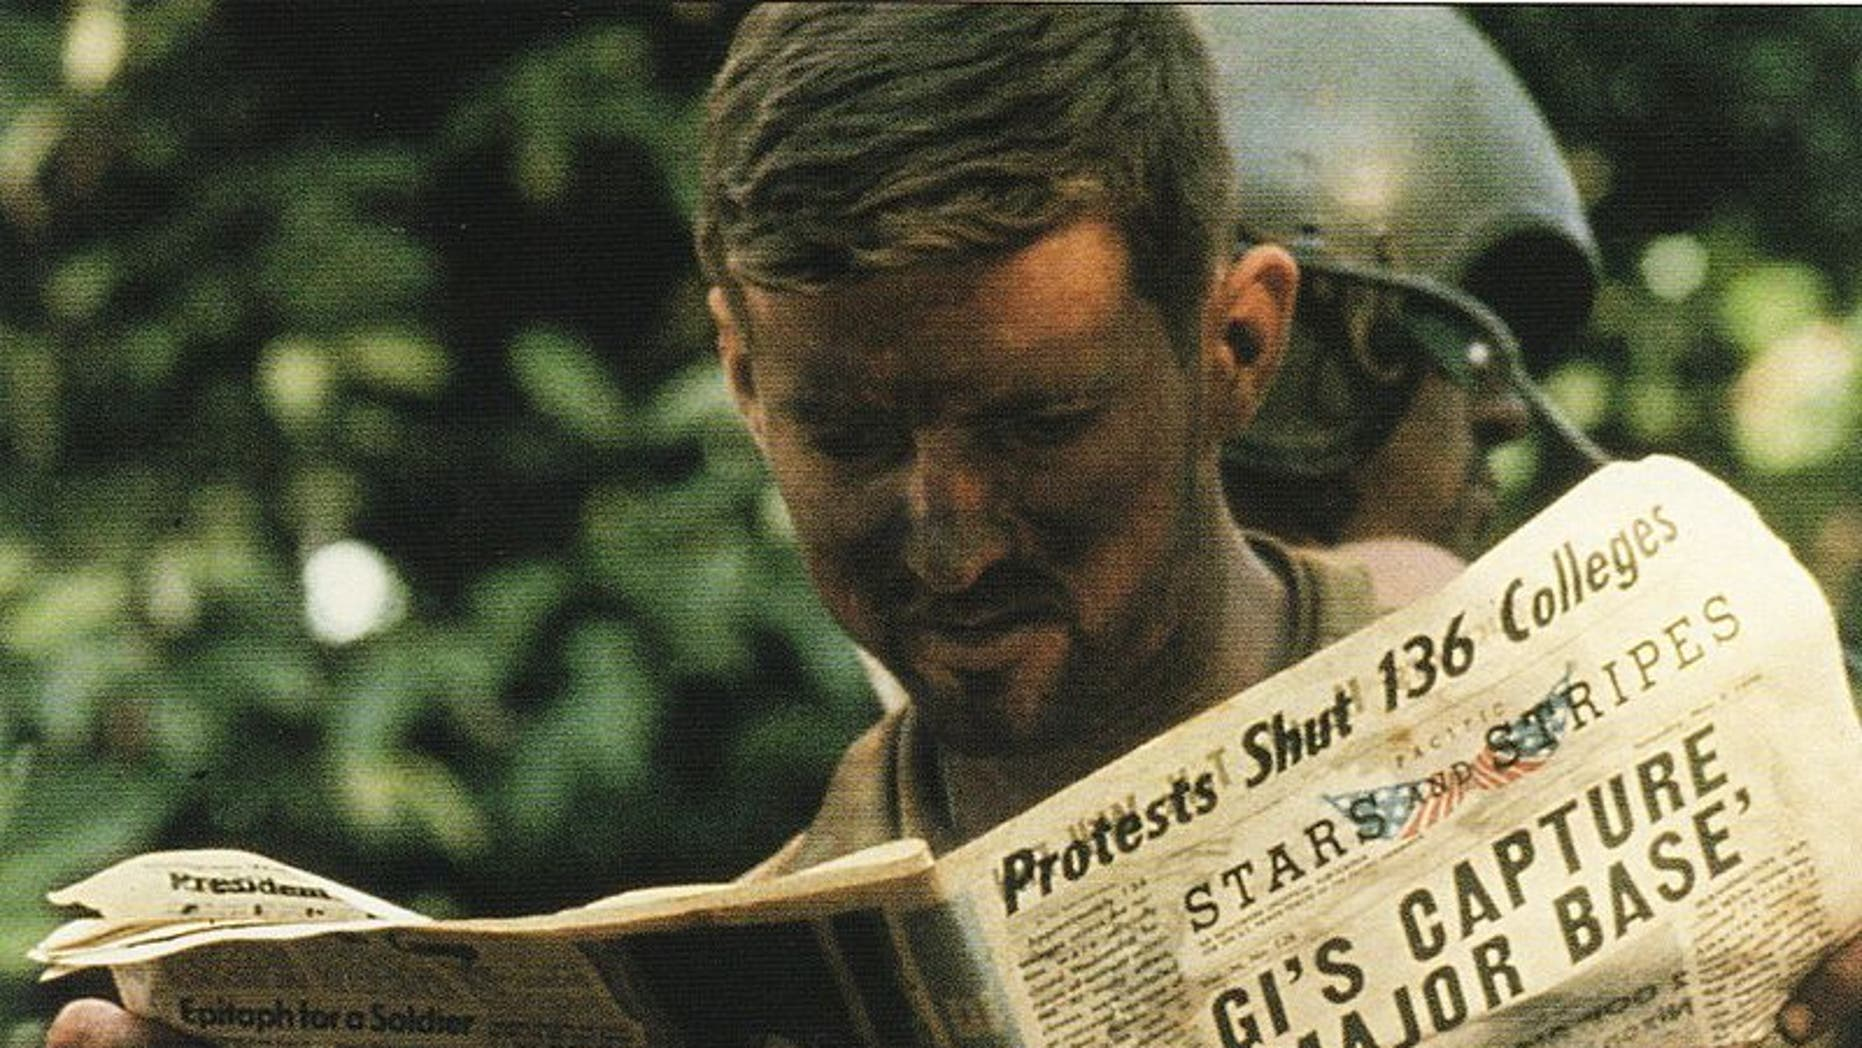 An American soldier reads a copy of Stars and Stripes during the Cambodian Campaign in 1970. (U.S. Army Center of Military History)